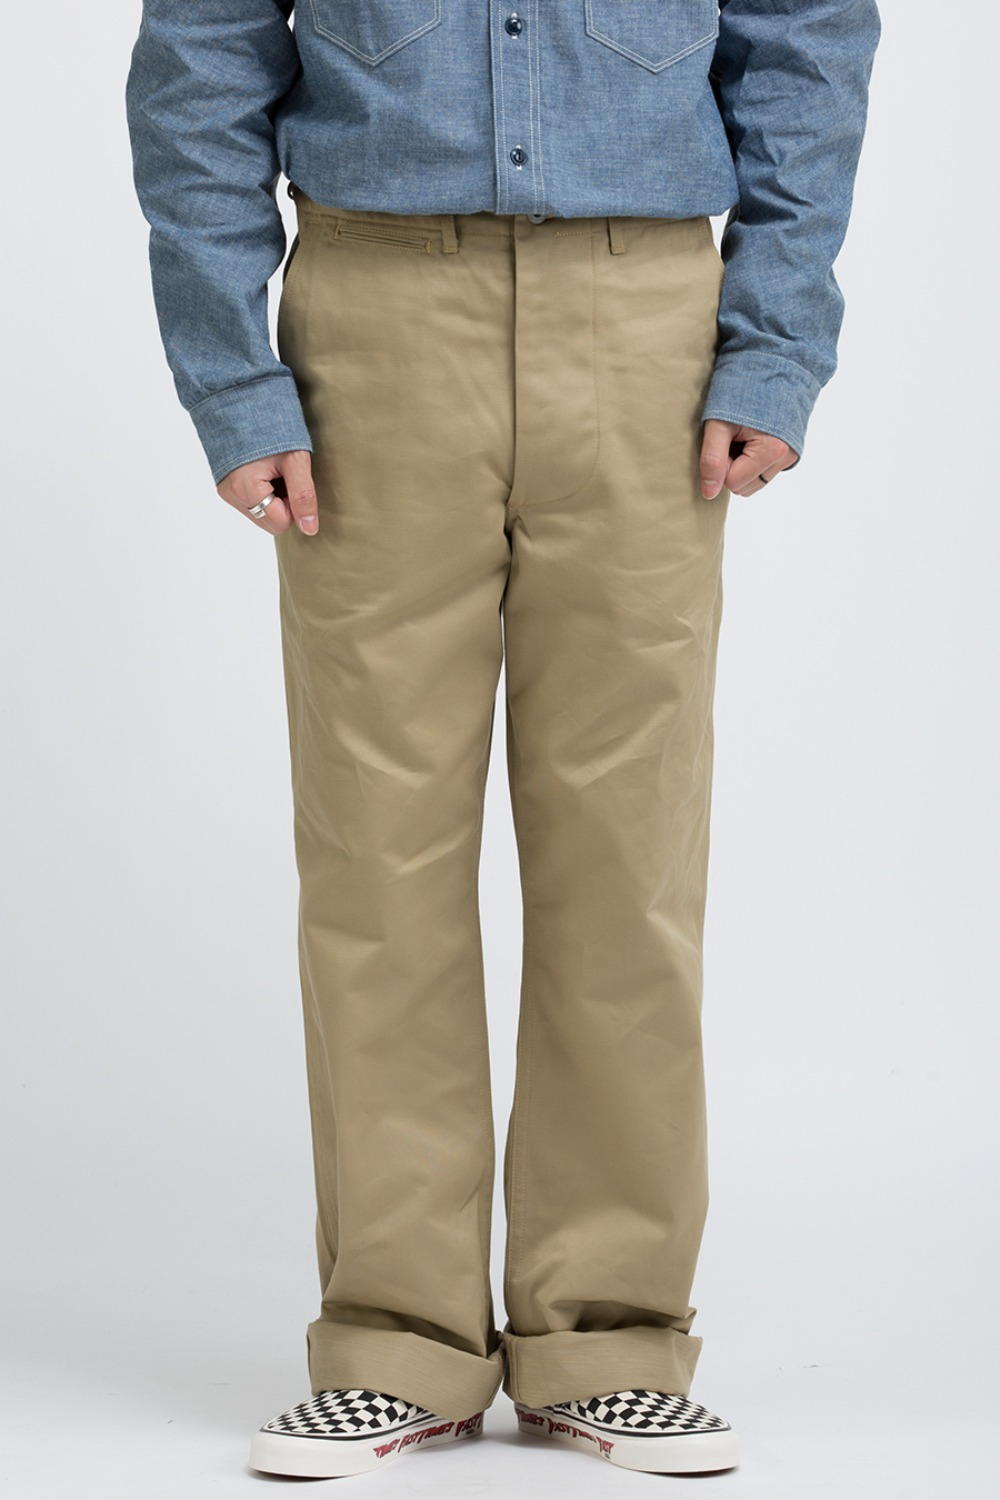 U.S.ARMY 41 KHAKI TROUSERS